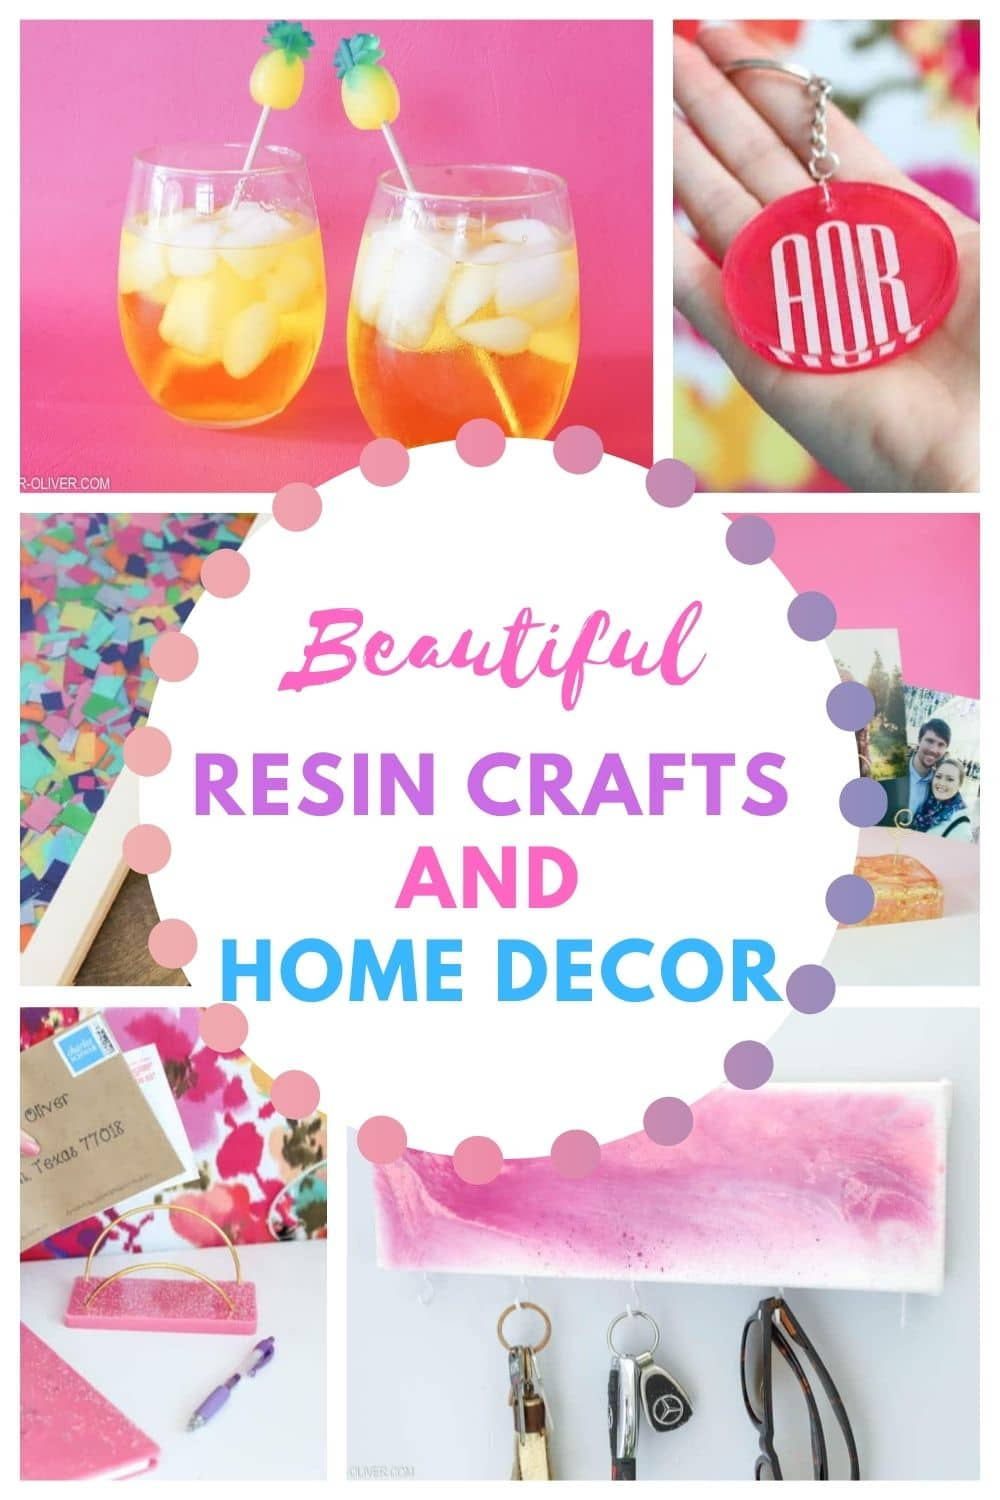 resin crafts and home decor projects pin collage with text overlay